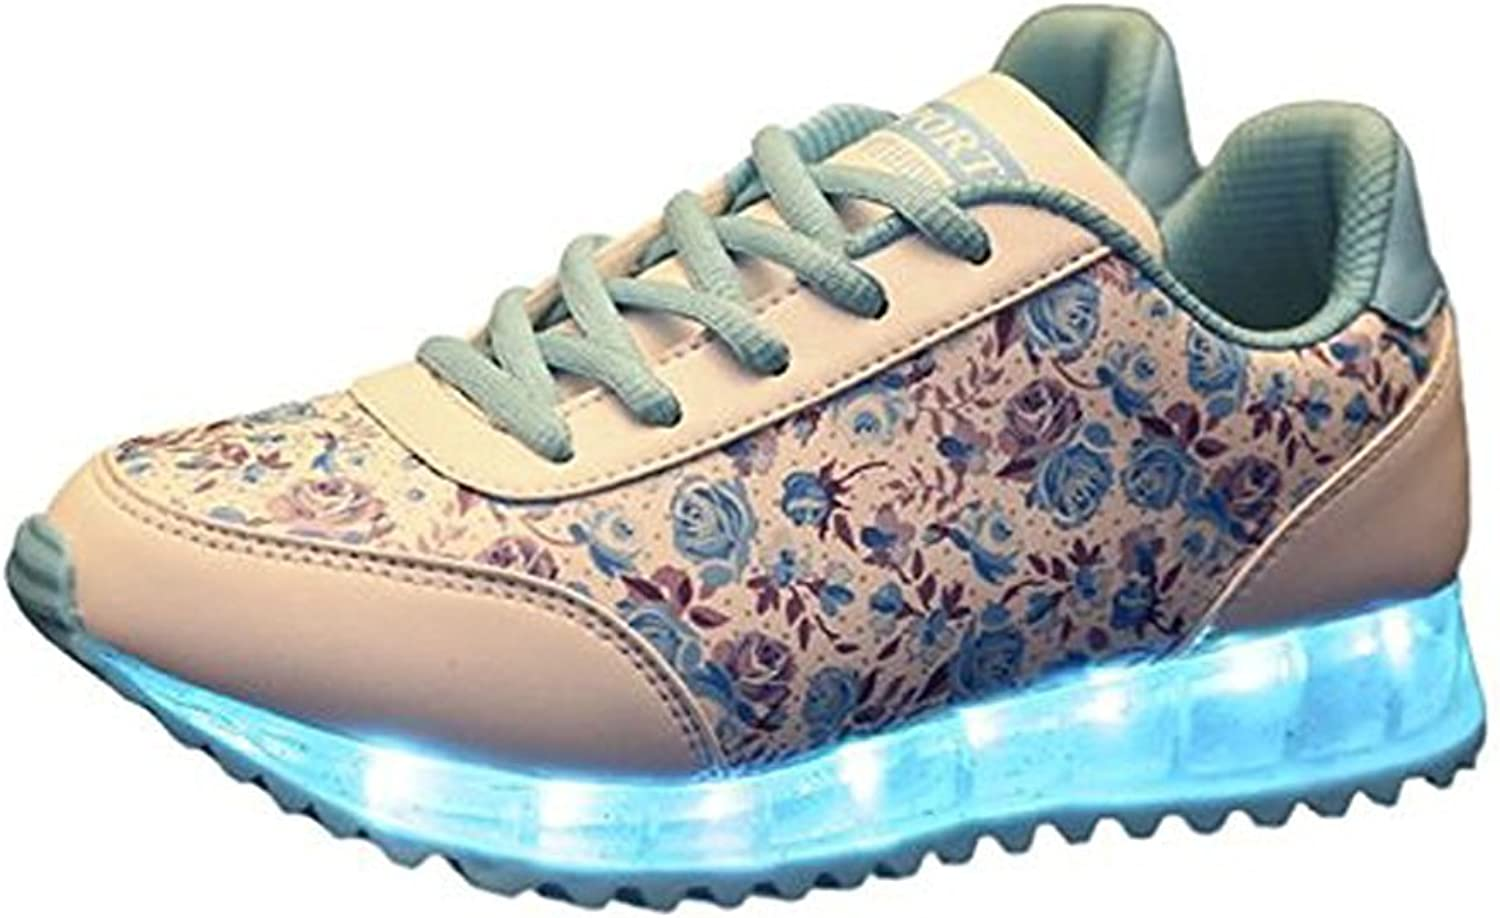 Sexphd LED Light Up Floral Pattern Lace Up Trainers Luminous shoes Sneakers